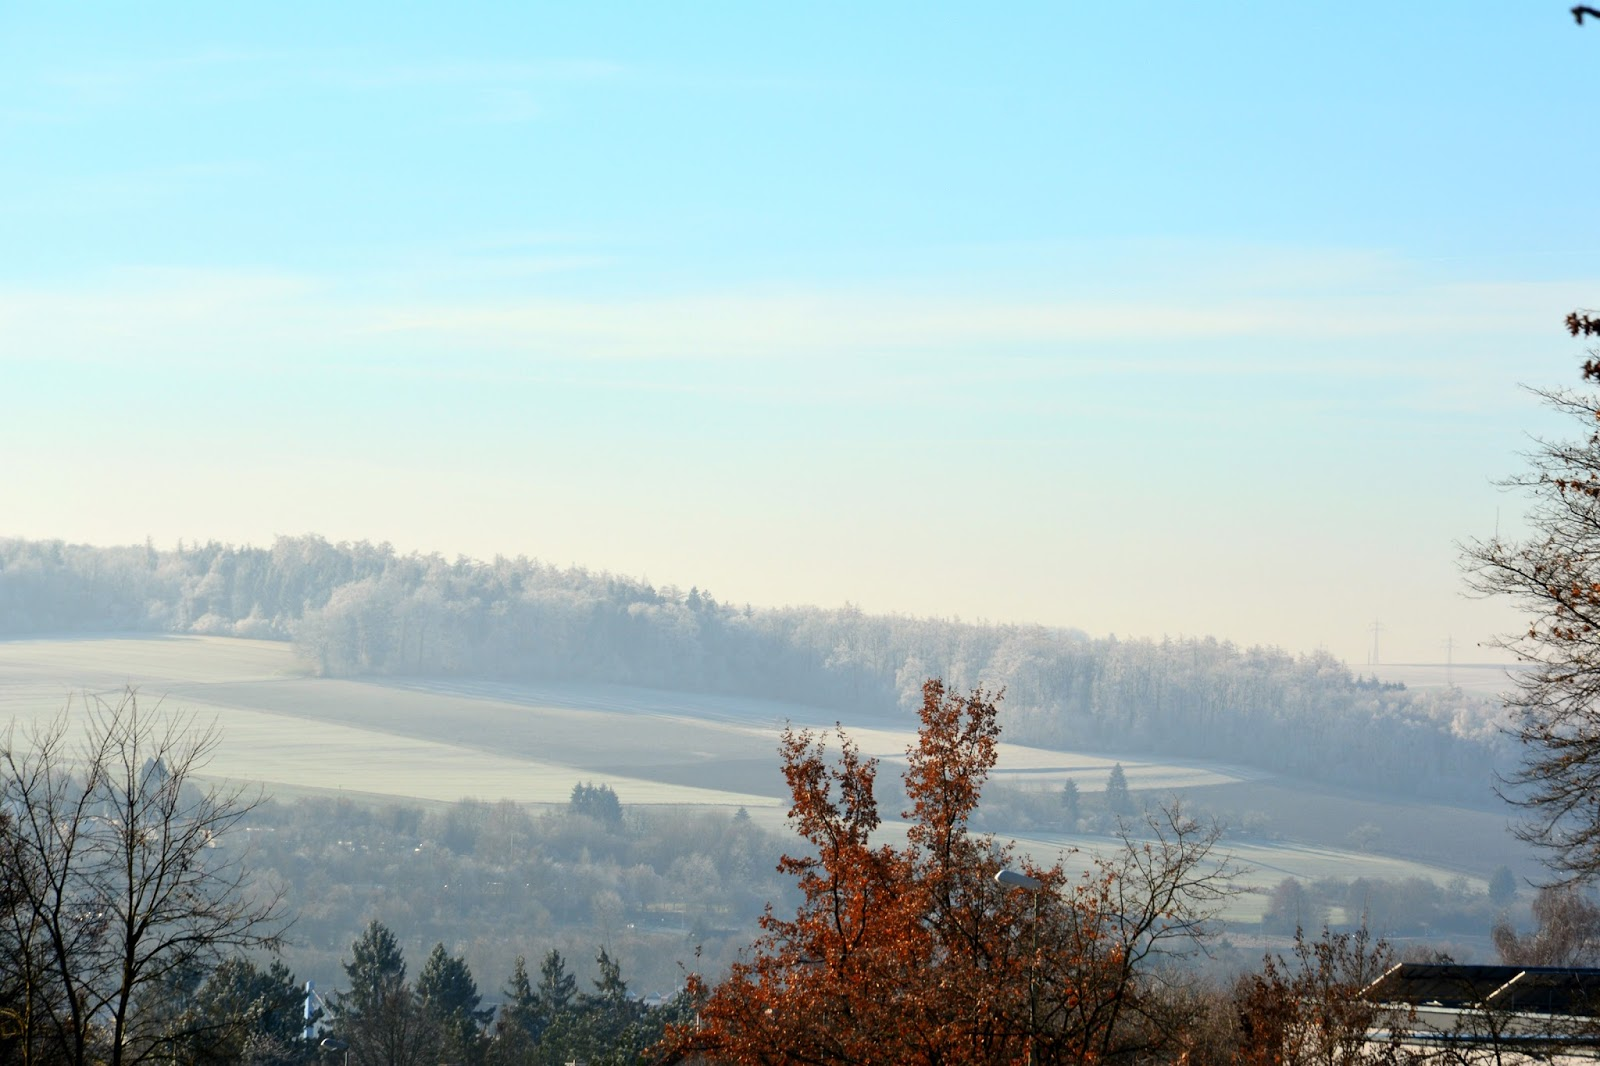 View of Ulm from Eselsberg with a dusky blue sky